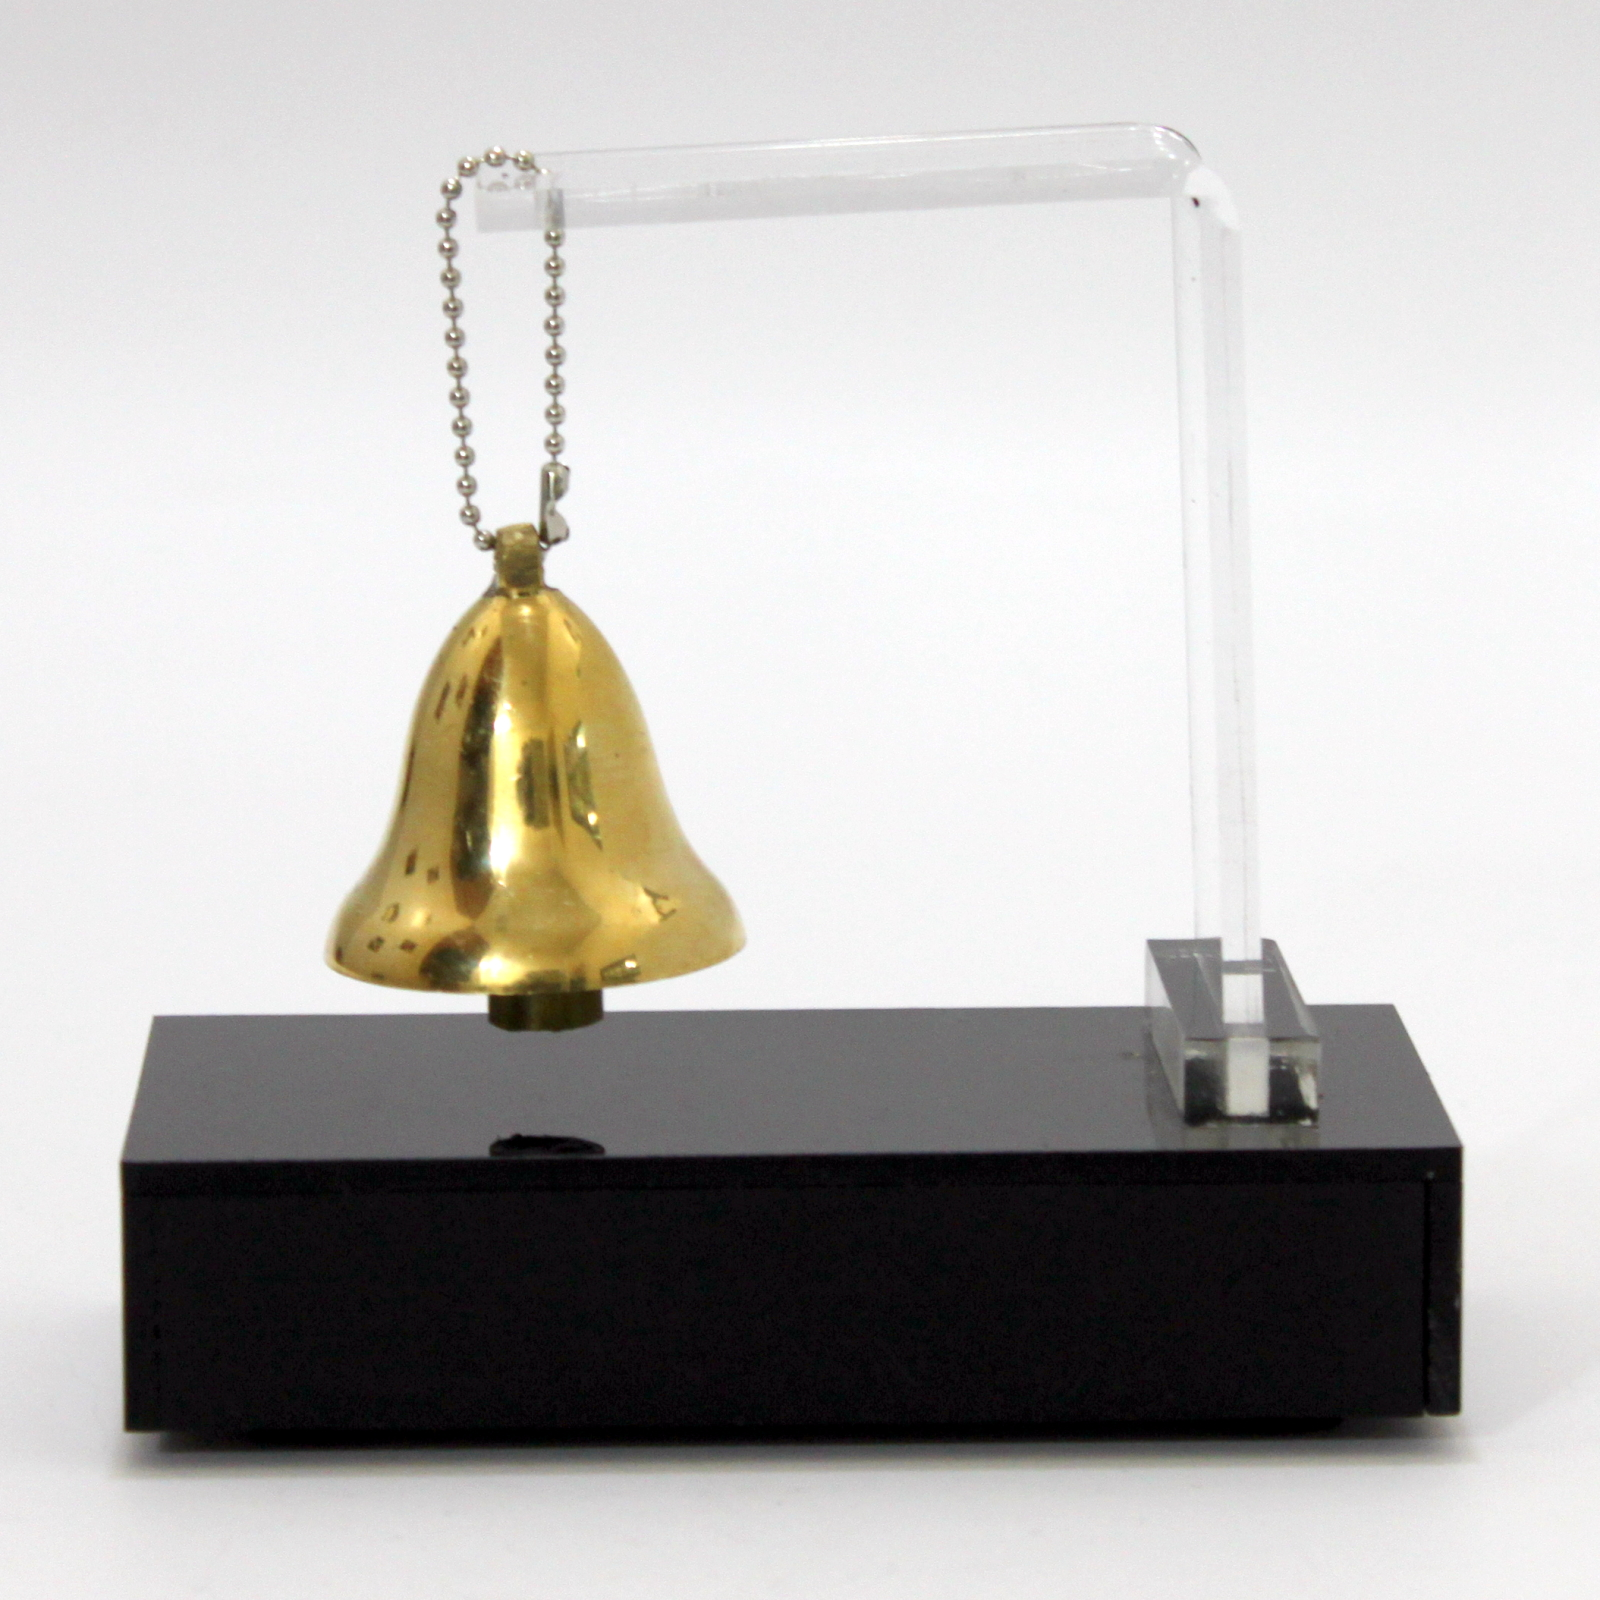 Spirit Bell with Case by Pangu Magic